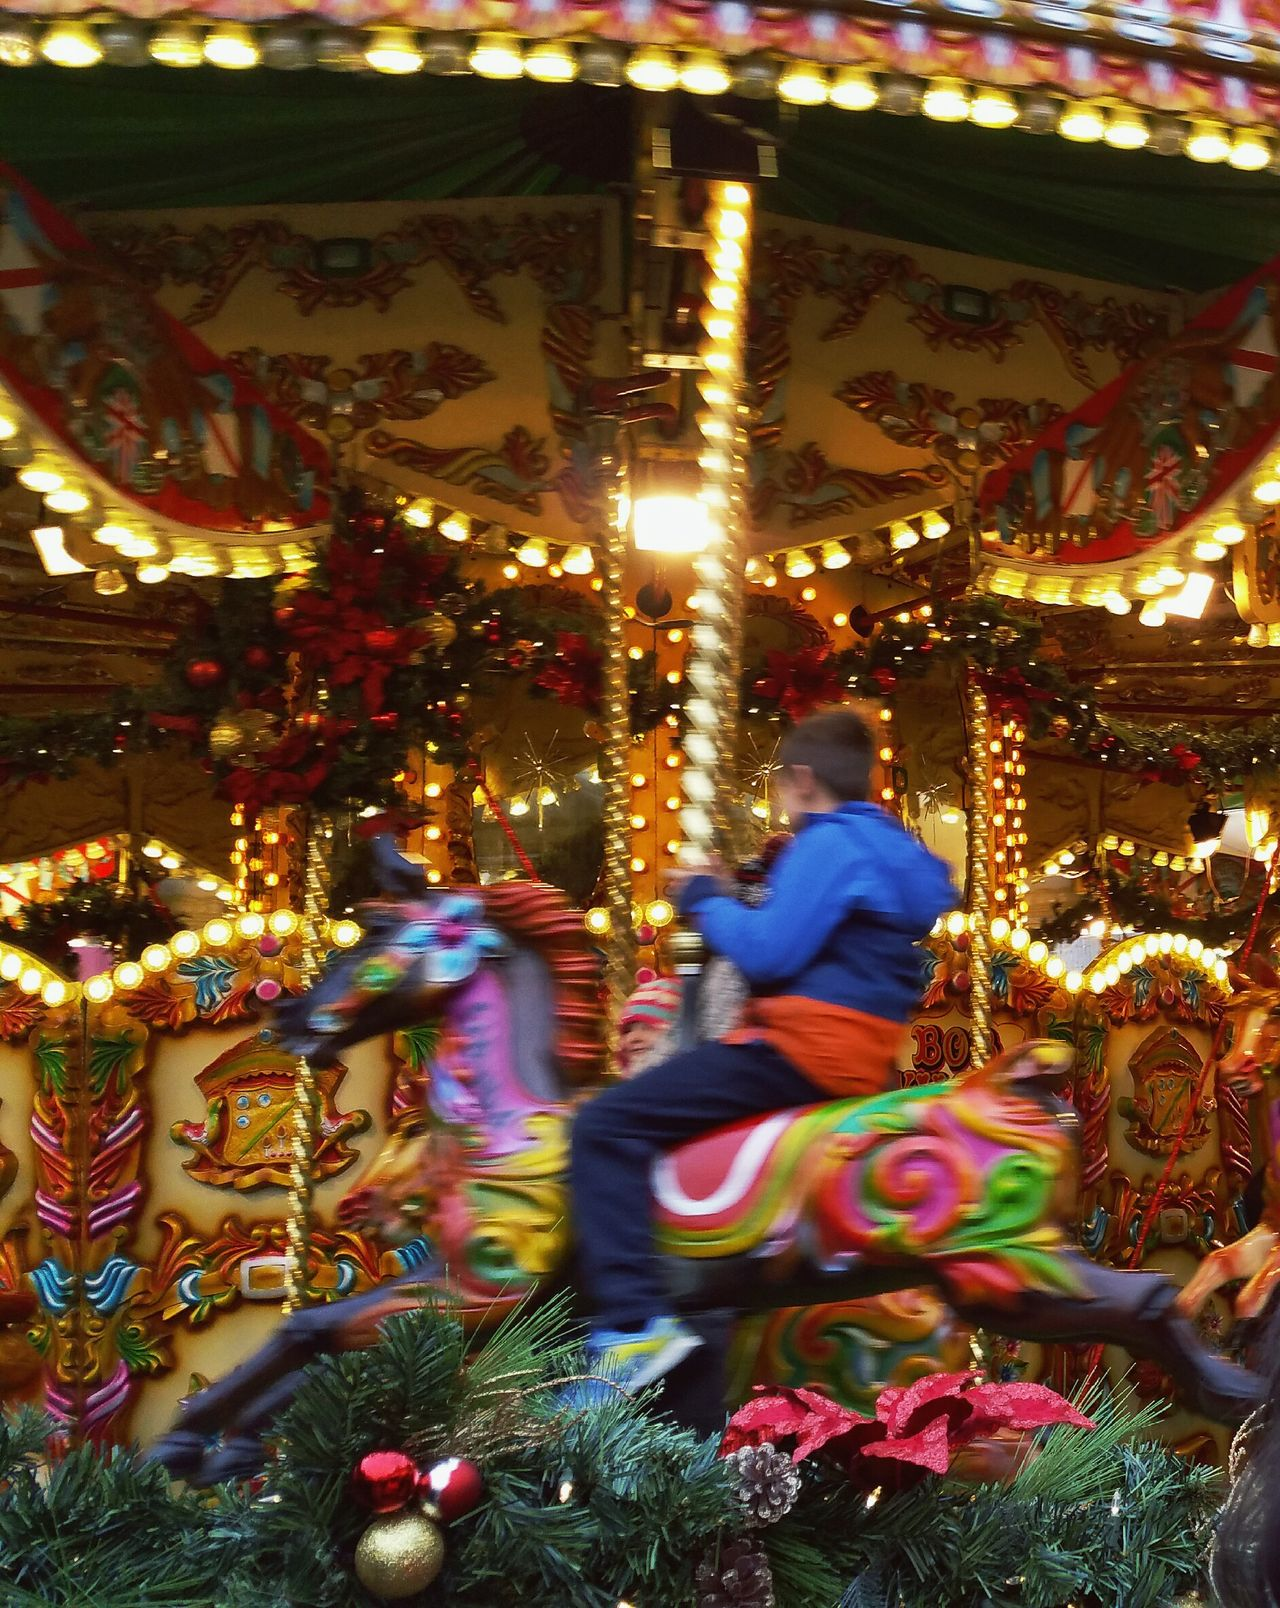 ... Speeding into Winter ... Illuminated Multi Colored Real People Outdoors People Architecture Merry Go Round Carousel Carousel Horse Childhood Children Child Kid Christmas Decoration Christmas Birmingham Christmas Market Decoration Decorations Lights Motion Blur Fun